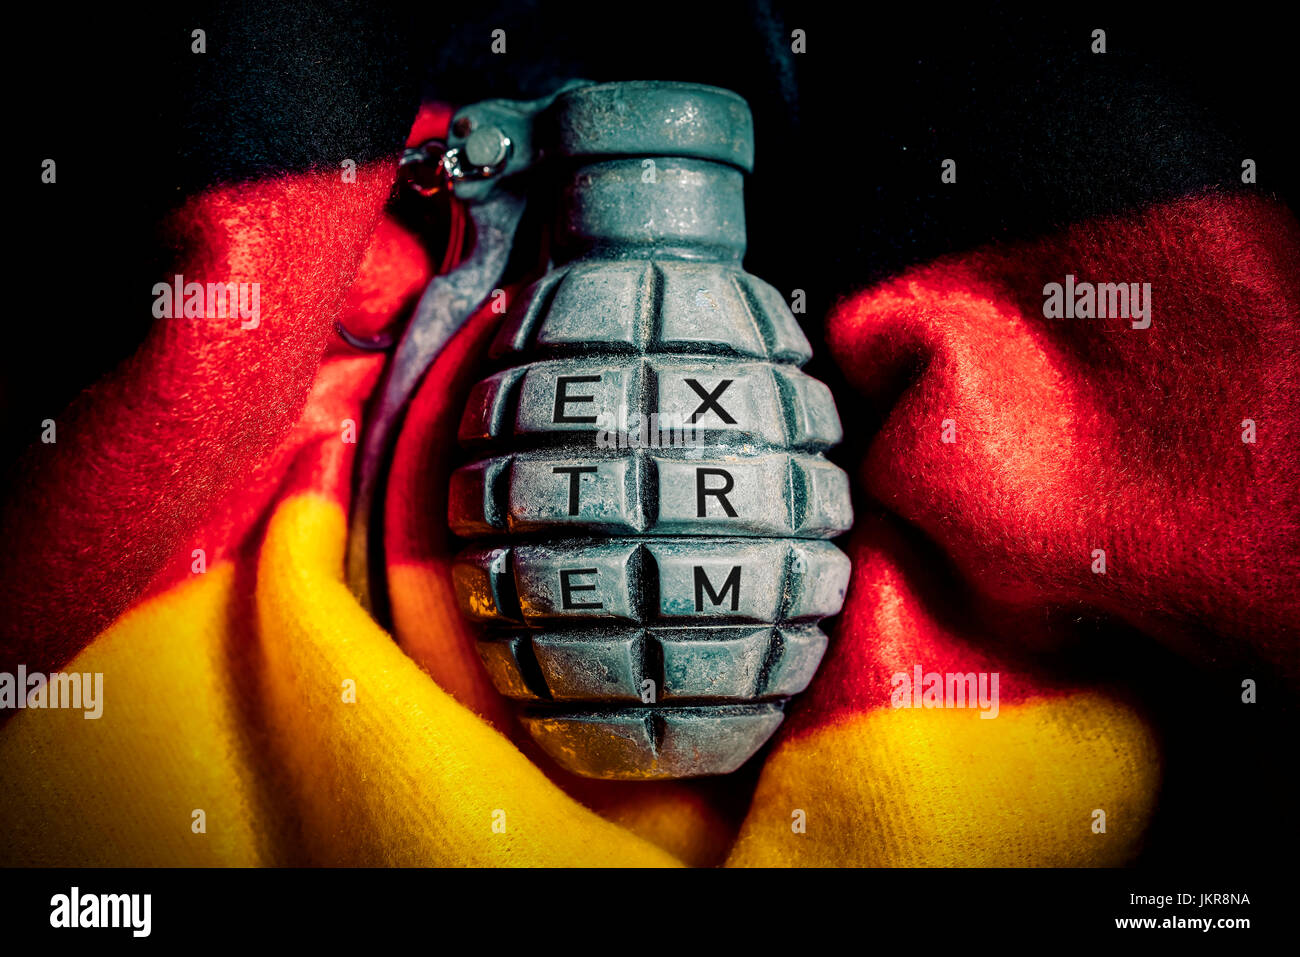 Grenade in Germany flag, extremism in Germany, Handgranate in Deutschlandfahne, Extremismus in Deutschland - Stock Image